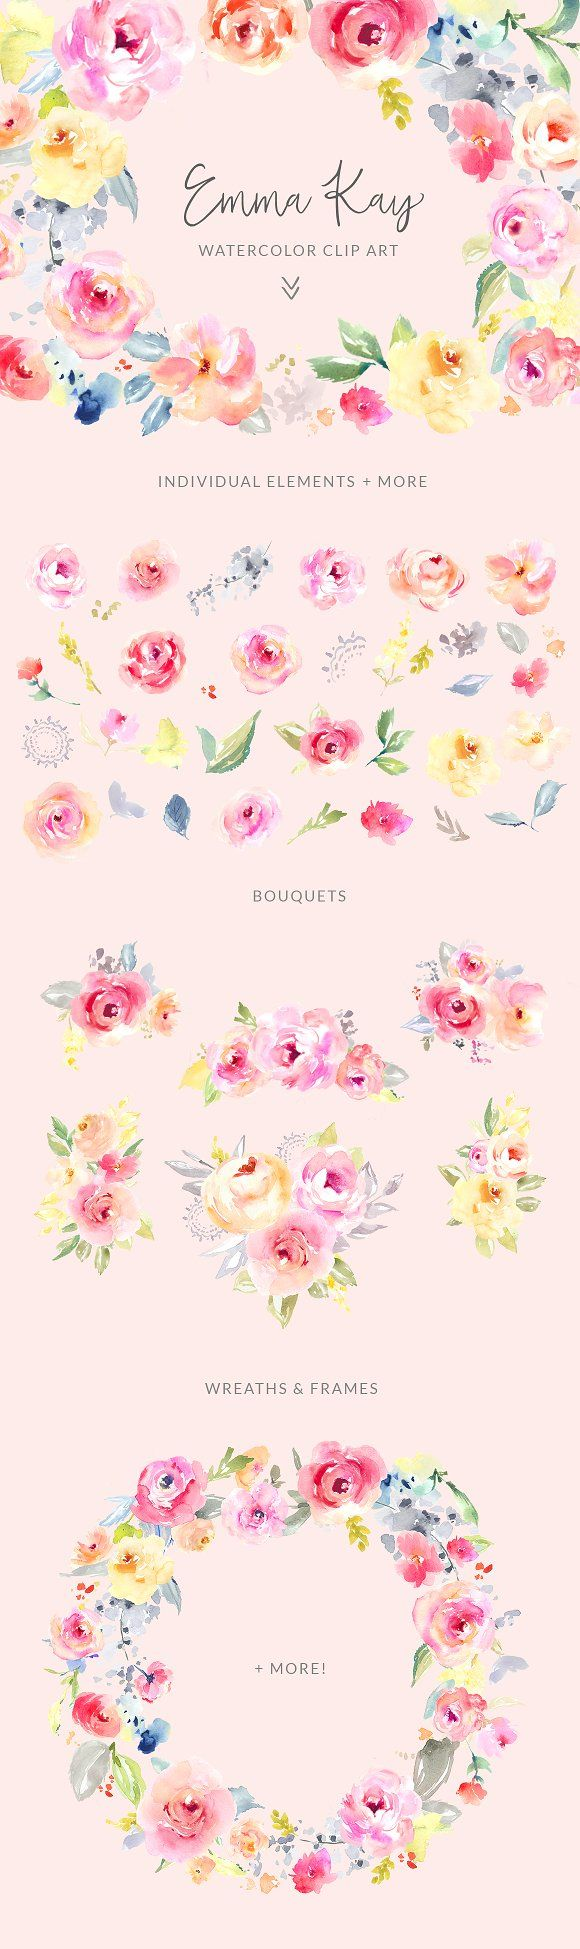 Emma Kay Watercolor Clip Art Flower by Angie Makes on @creativemarket